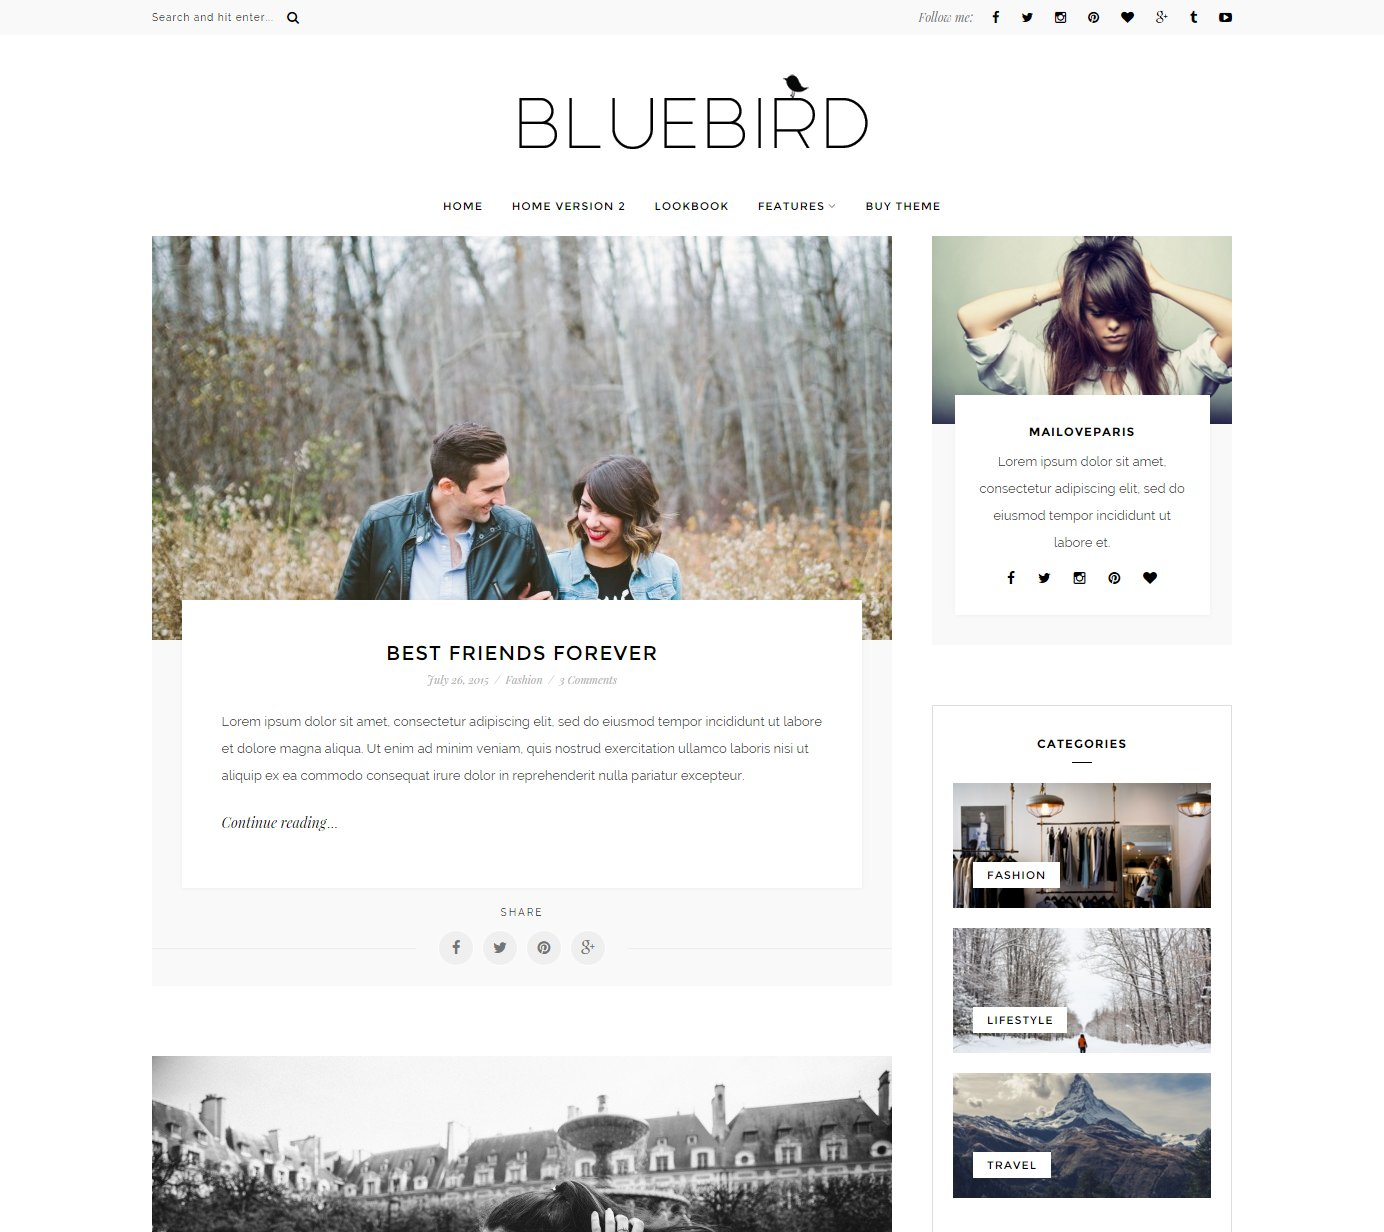 word press blog templates - bluebird wordpress blog theme wordpress blog themes